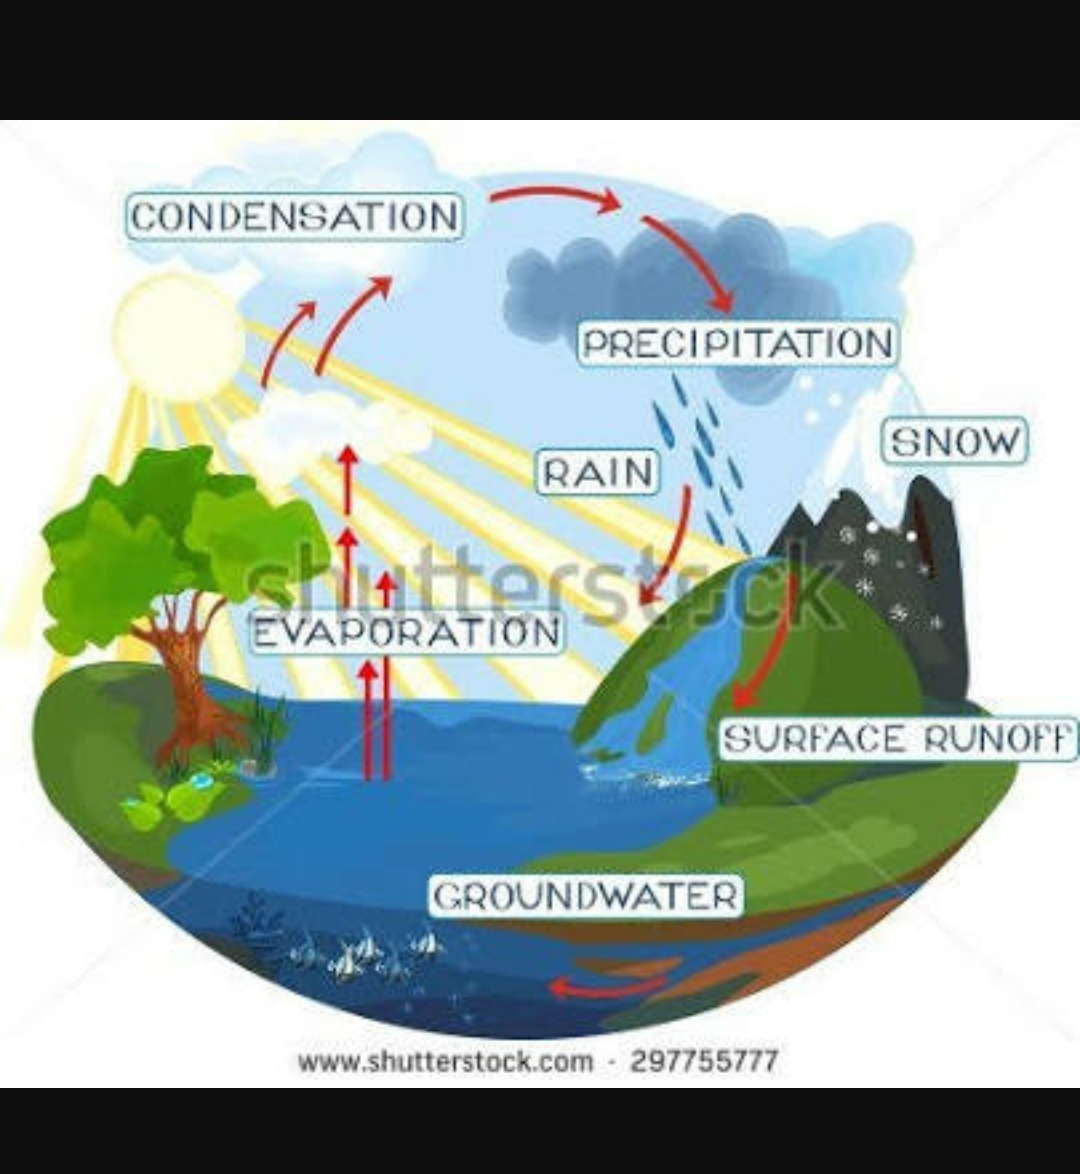 How to make water cycle brainly download jpg ccuart Choice Image